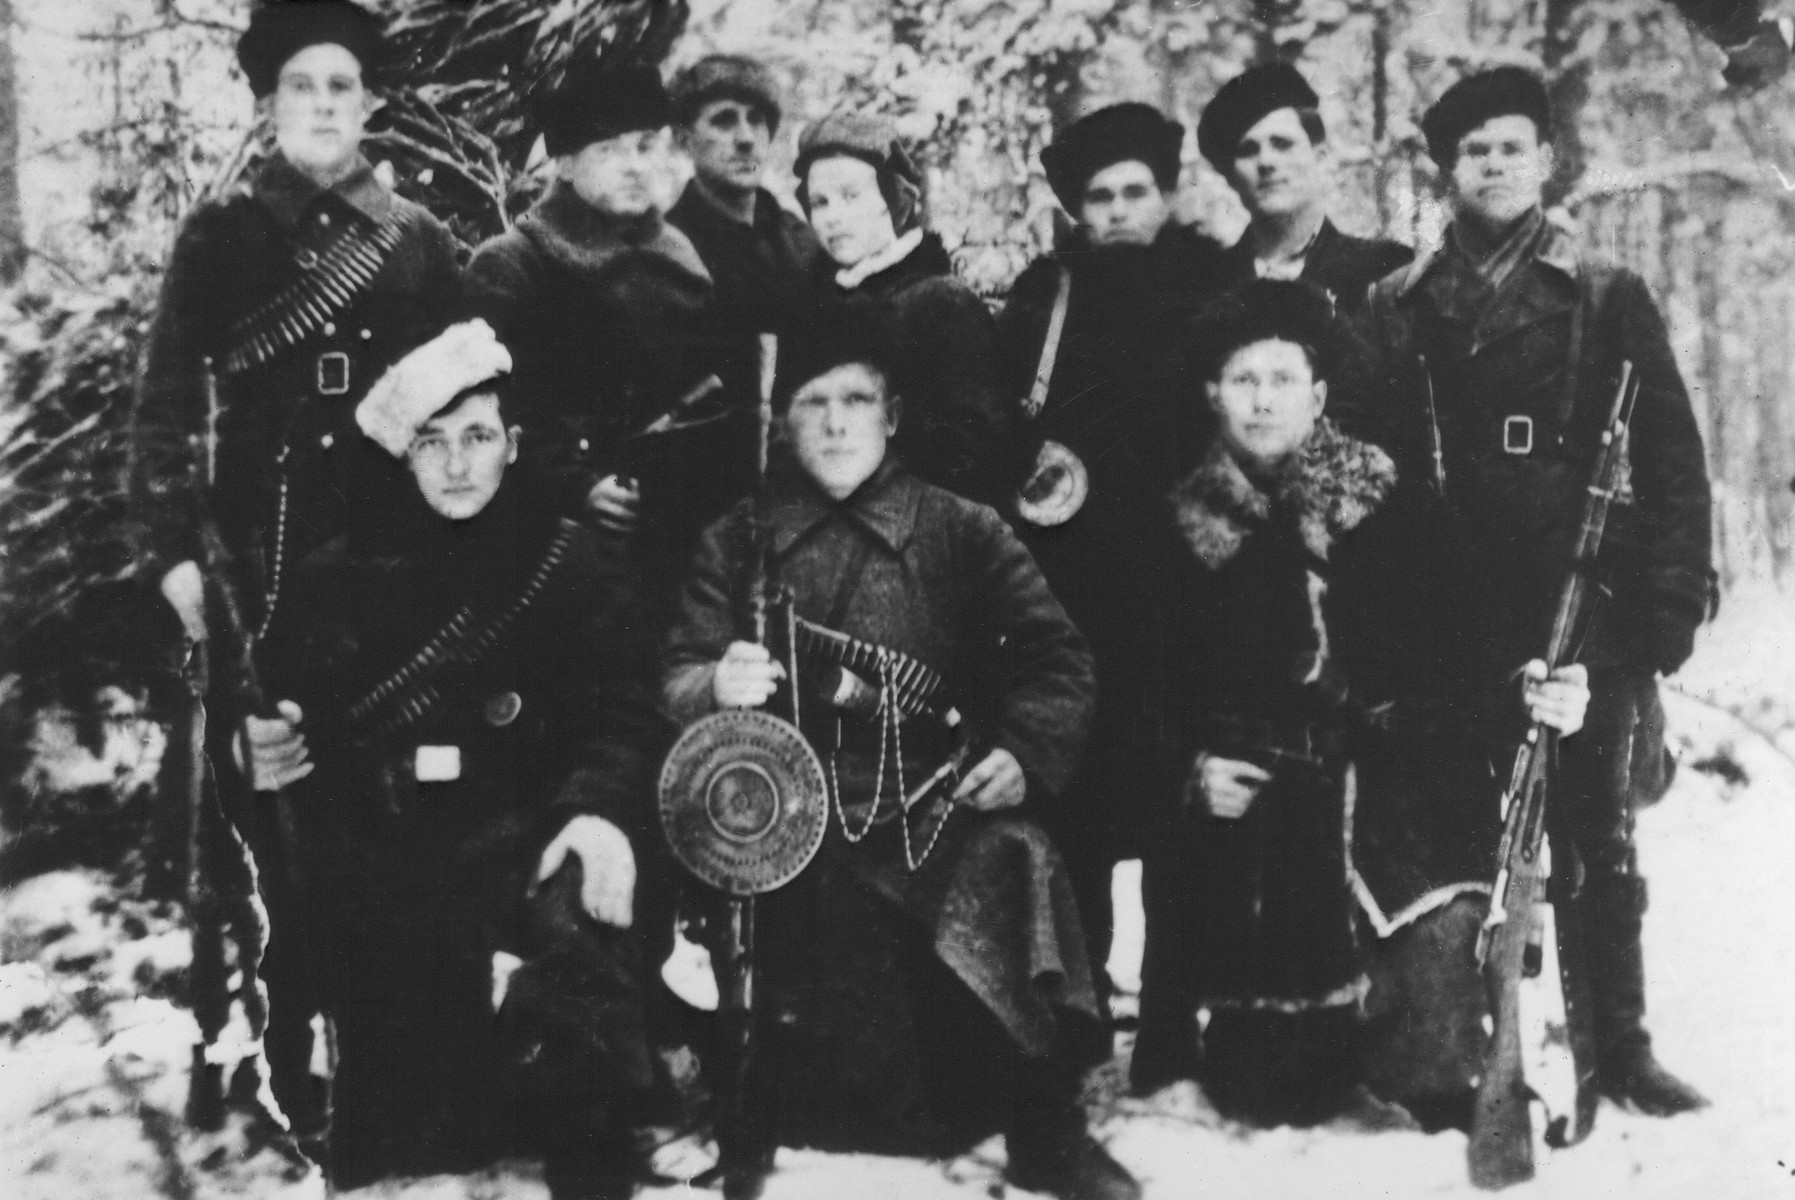 Group portrait of Soviet partisans who are members of the Shish detachment of the Molotov partisan brigade.